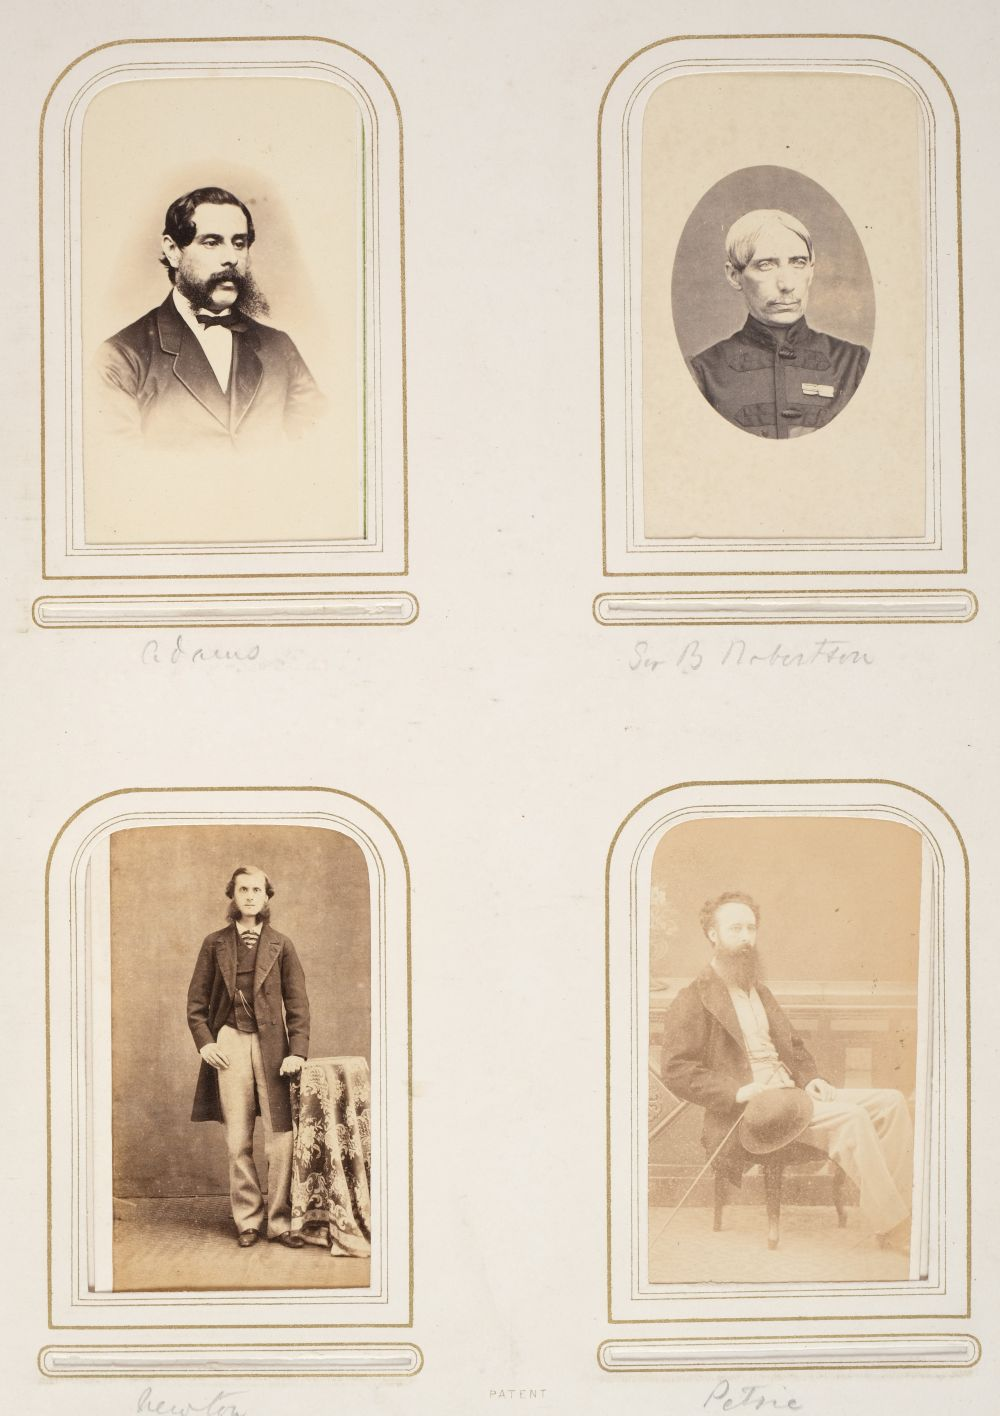 * Cartes de visite. A group of 3 albums of cartes de visite and cabinet cards - Image 13 of 26